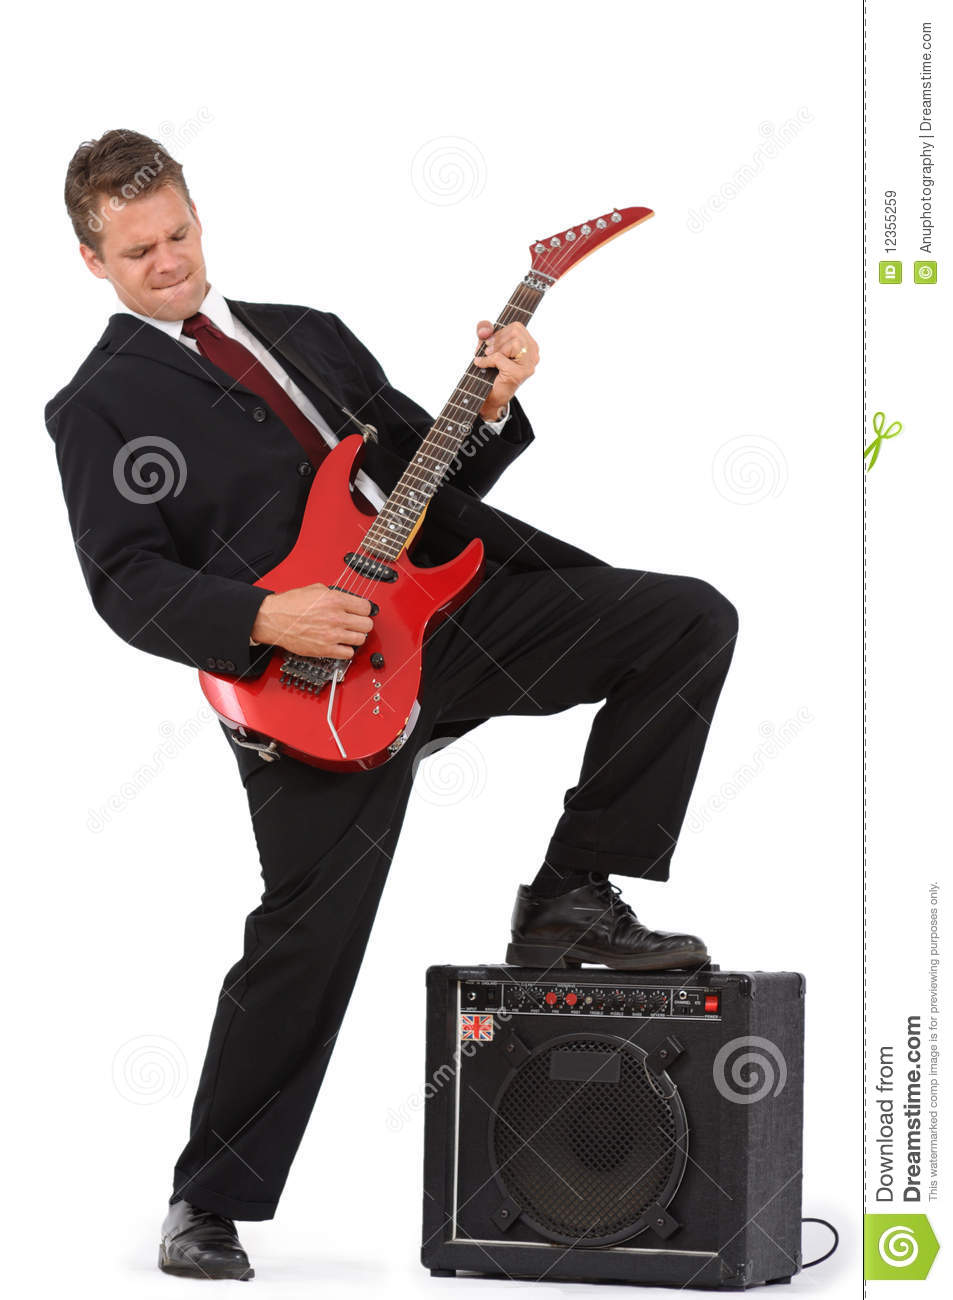 business-man-rocking-out-red-guitar-1235